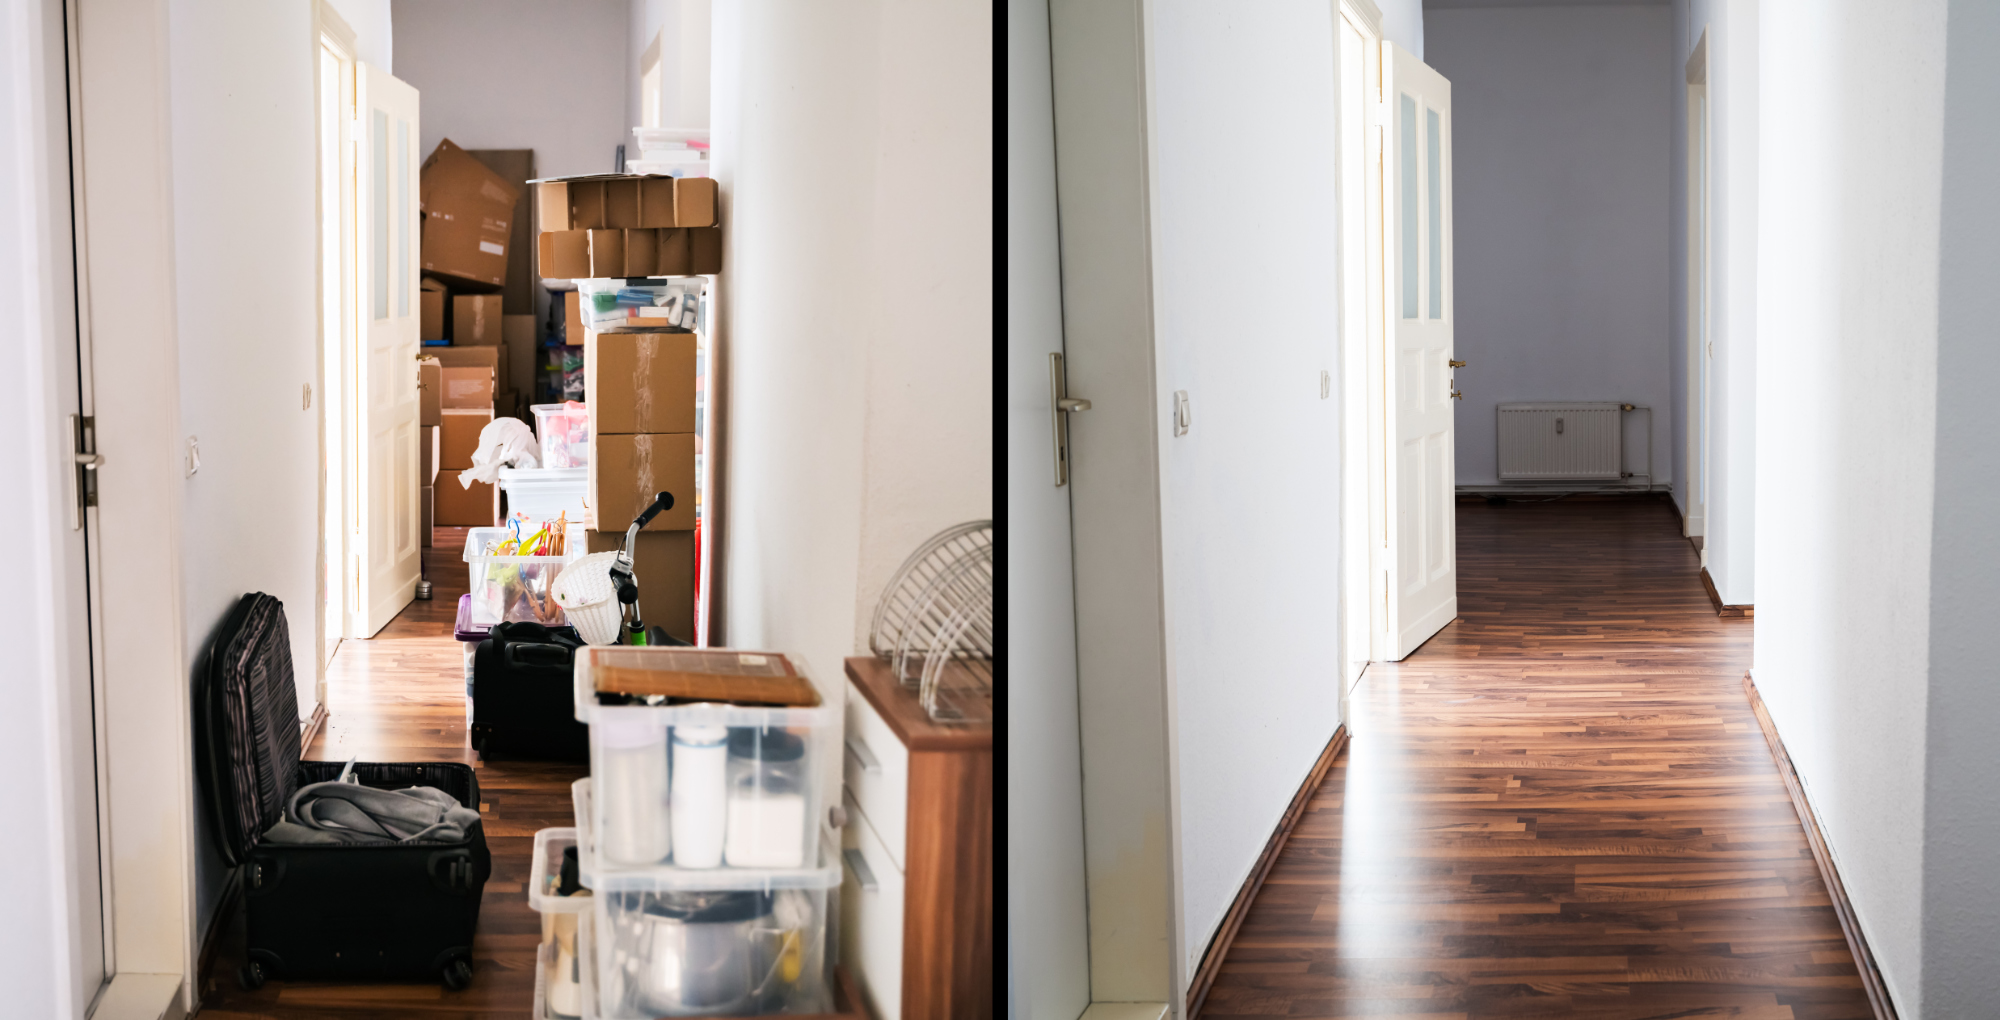 The de clutter struggle – It's easier than you think!